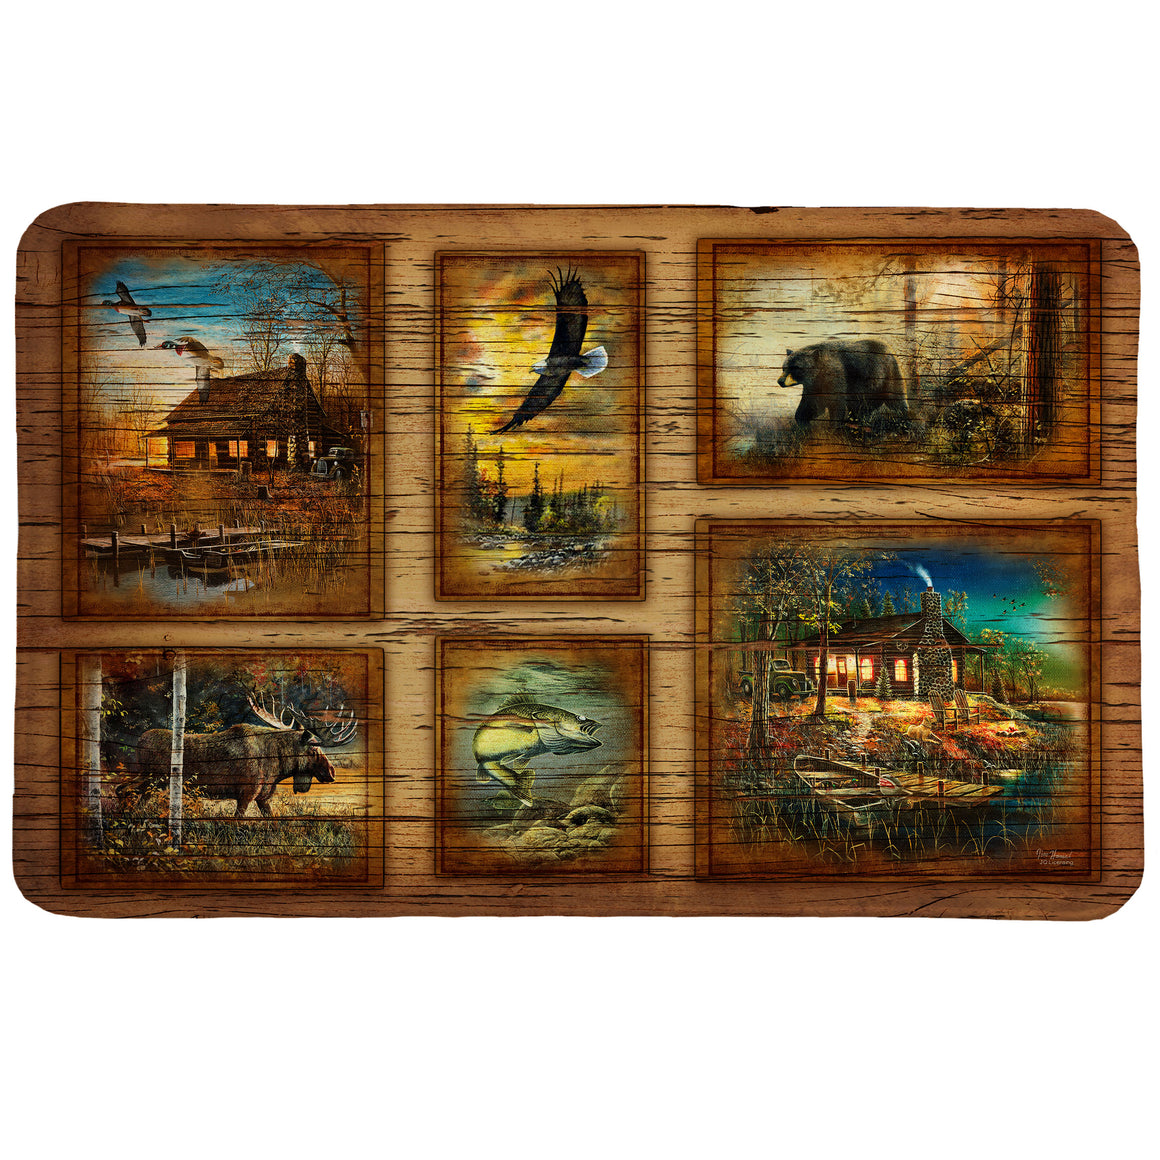 Forest Collage Memory Foam Rug features a fun collage of rustic outdoor imagery.